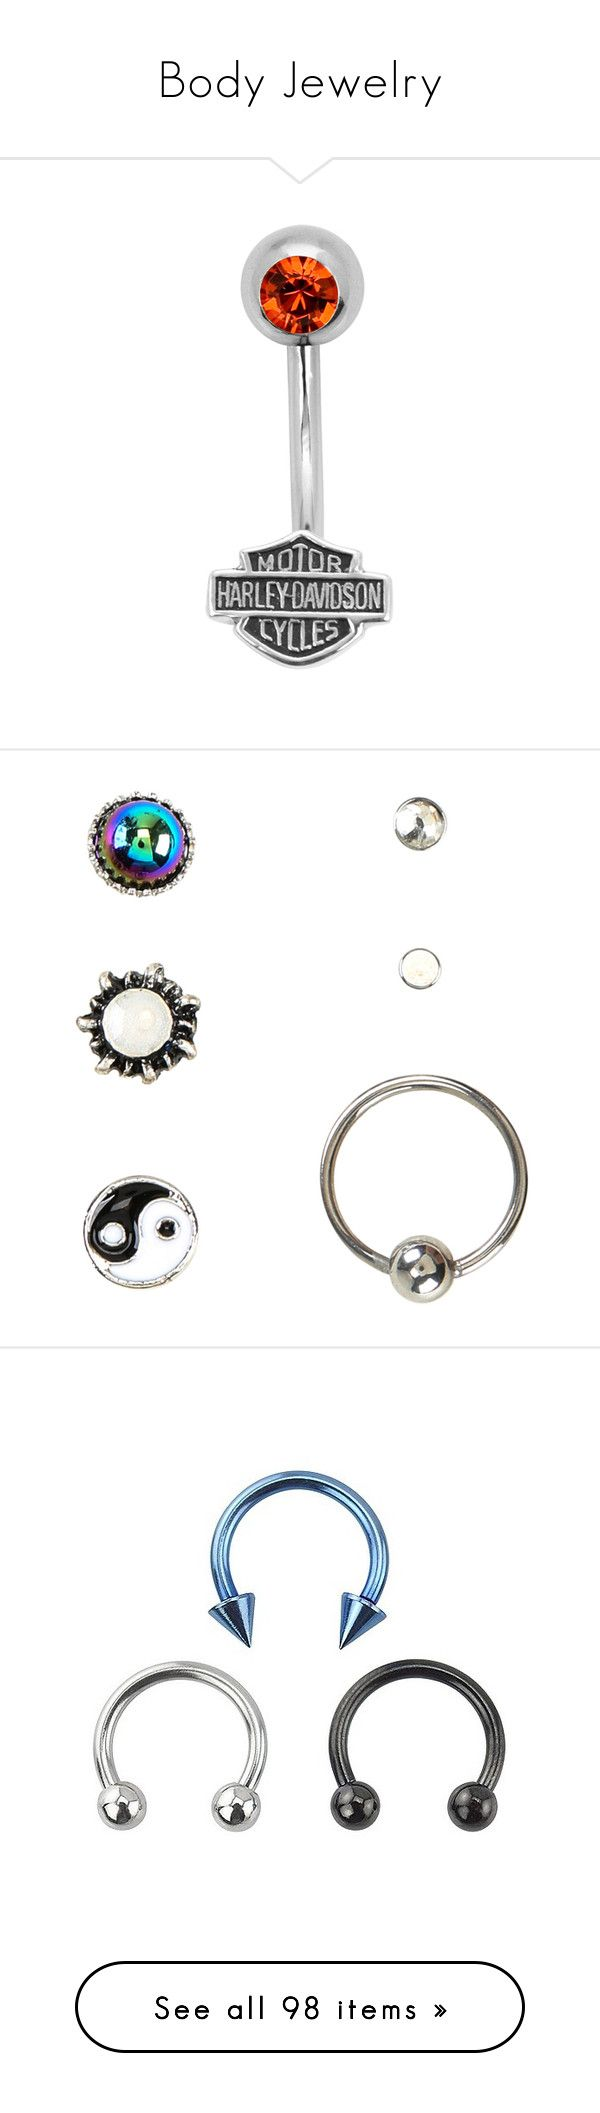 """""""Body Jewelry"""" by silvercookies ❤ liked on Polyvore featuring jewelry, belly rings, accessories, belly rings jewelry, belly button rings jewelry, harley davidson jewelry, orange jewelry, harley davidson jewellery, earrings and steel stud earrings"""